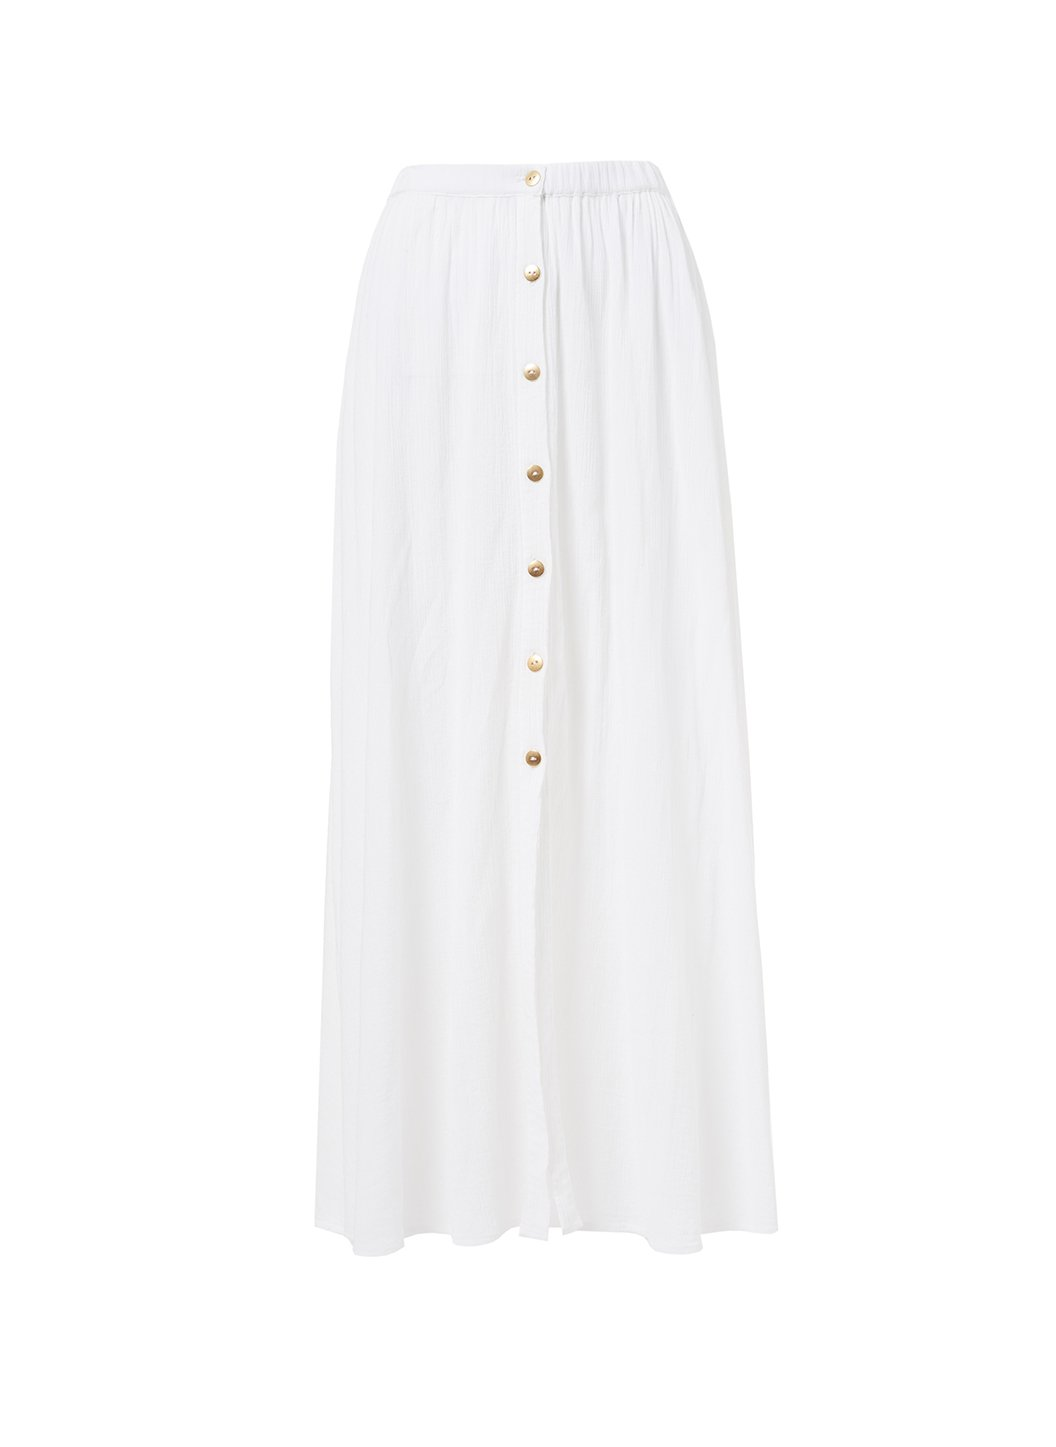 dru white button down maxi skirt 2019